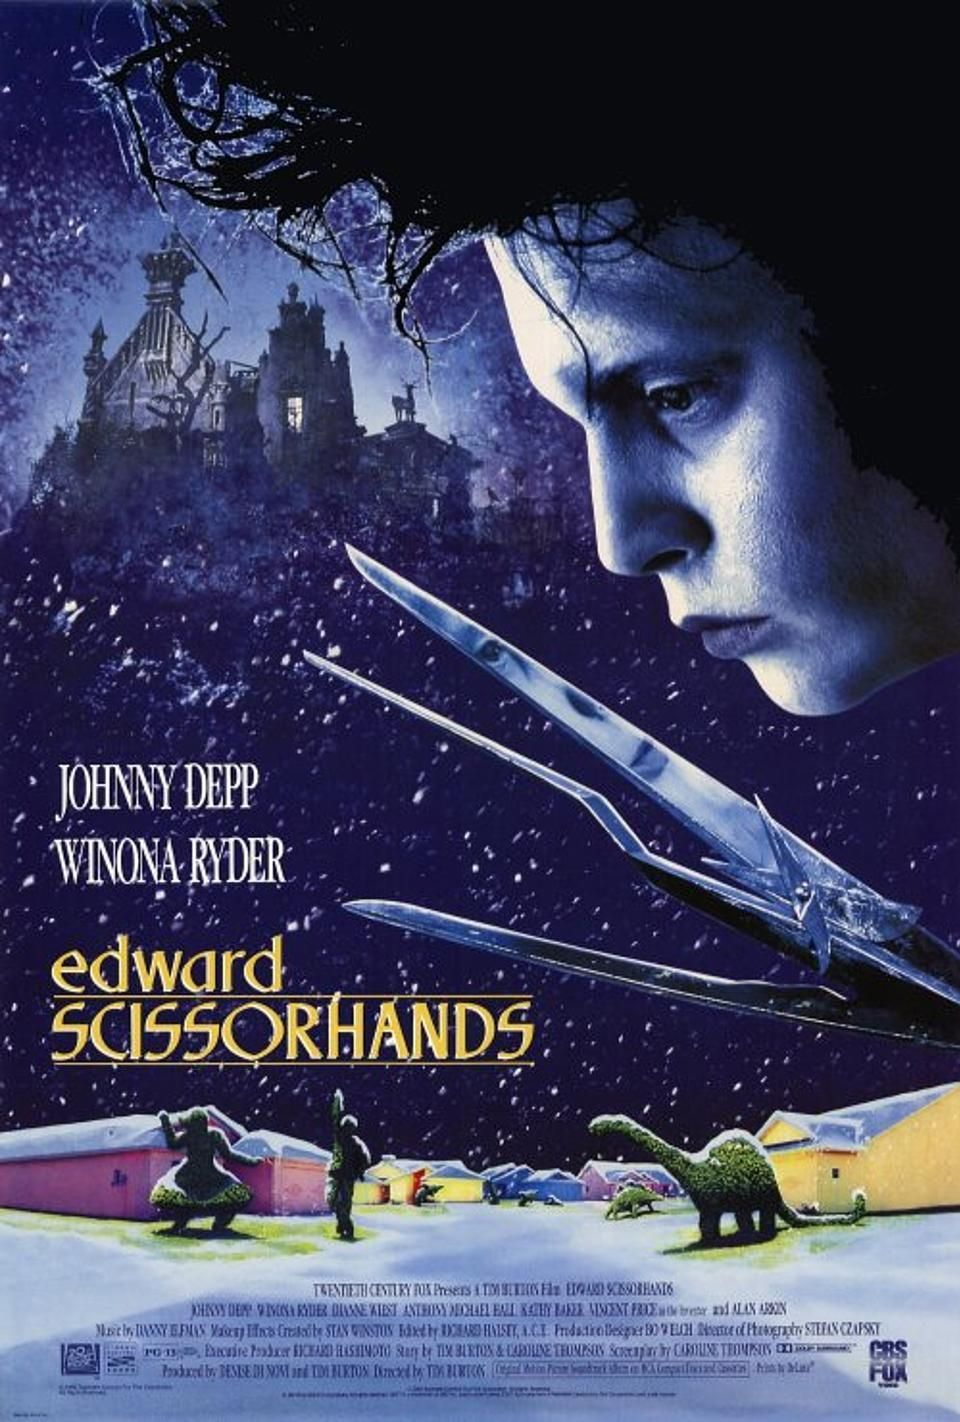 Edward Scissorhands (1990) If you ever want to explain to someone from Gen Z why Tim Burton and Johnny Depp have worked together approximately a zillion times, all you have to do is show them Edward Scissorhands , which was the perfect marriage of the frequent collaborators' individual brands of creepy quirkiness.